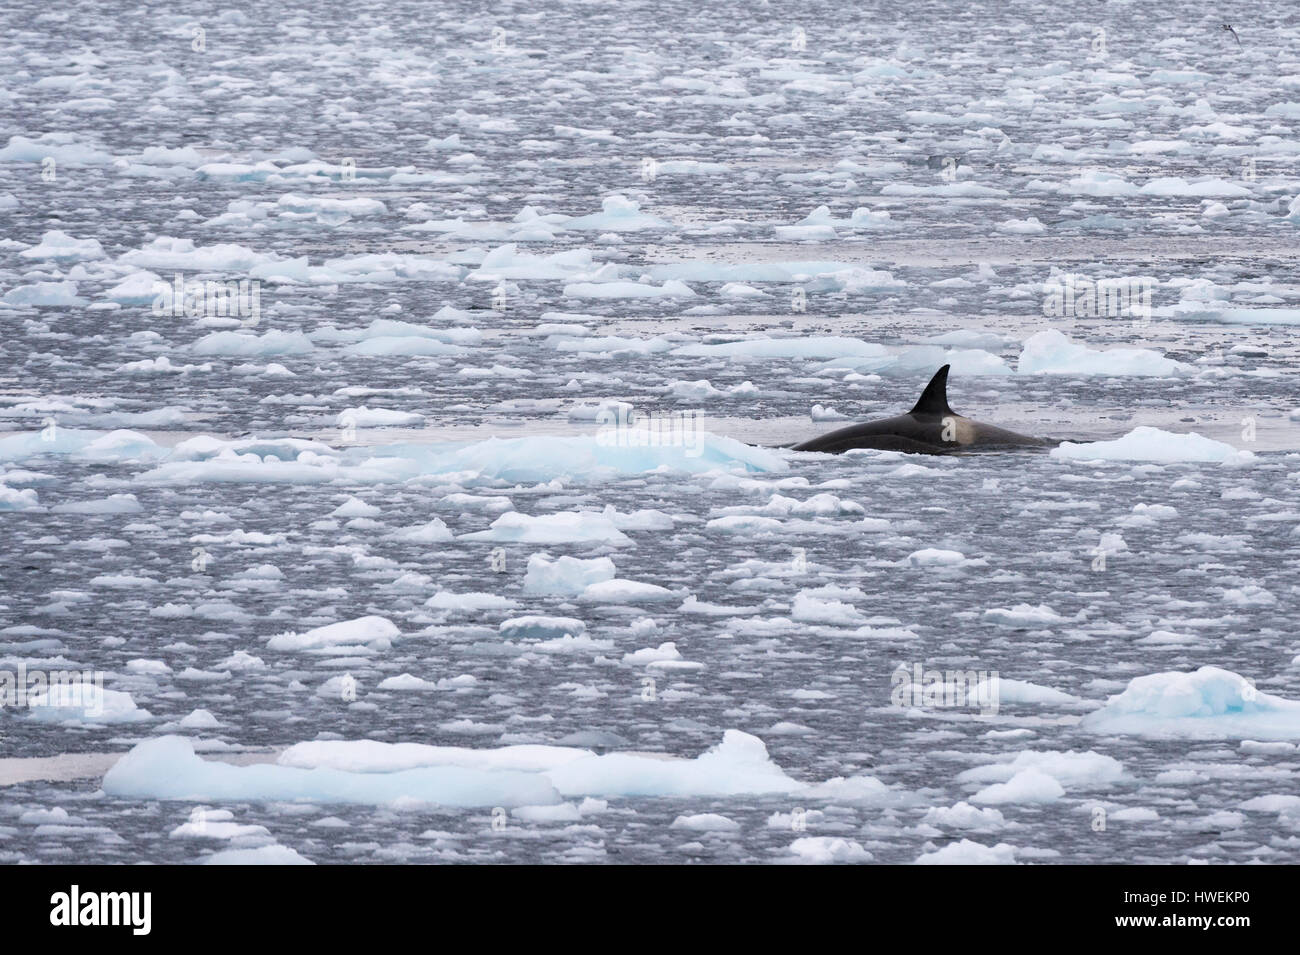 Orca (Orcinus orca) swimming in Lemaire channel, Antarctic - Stock Image